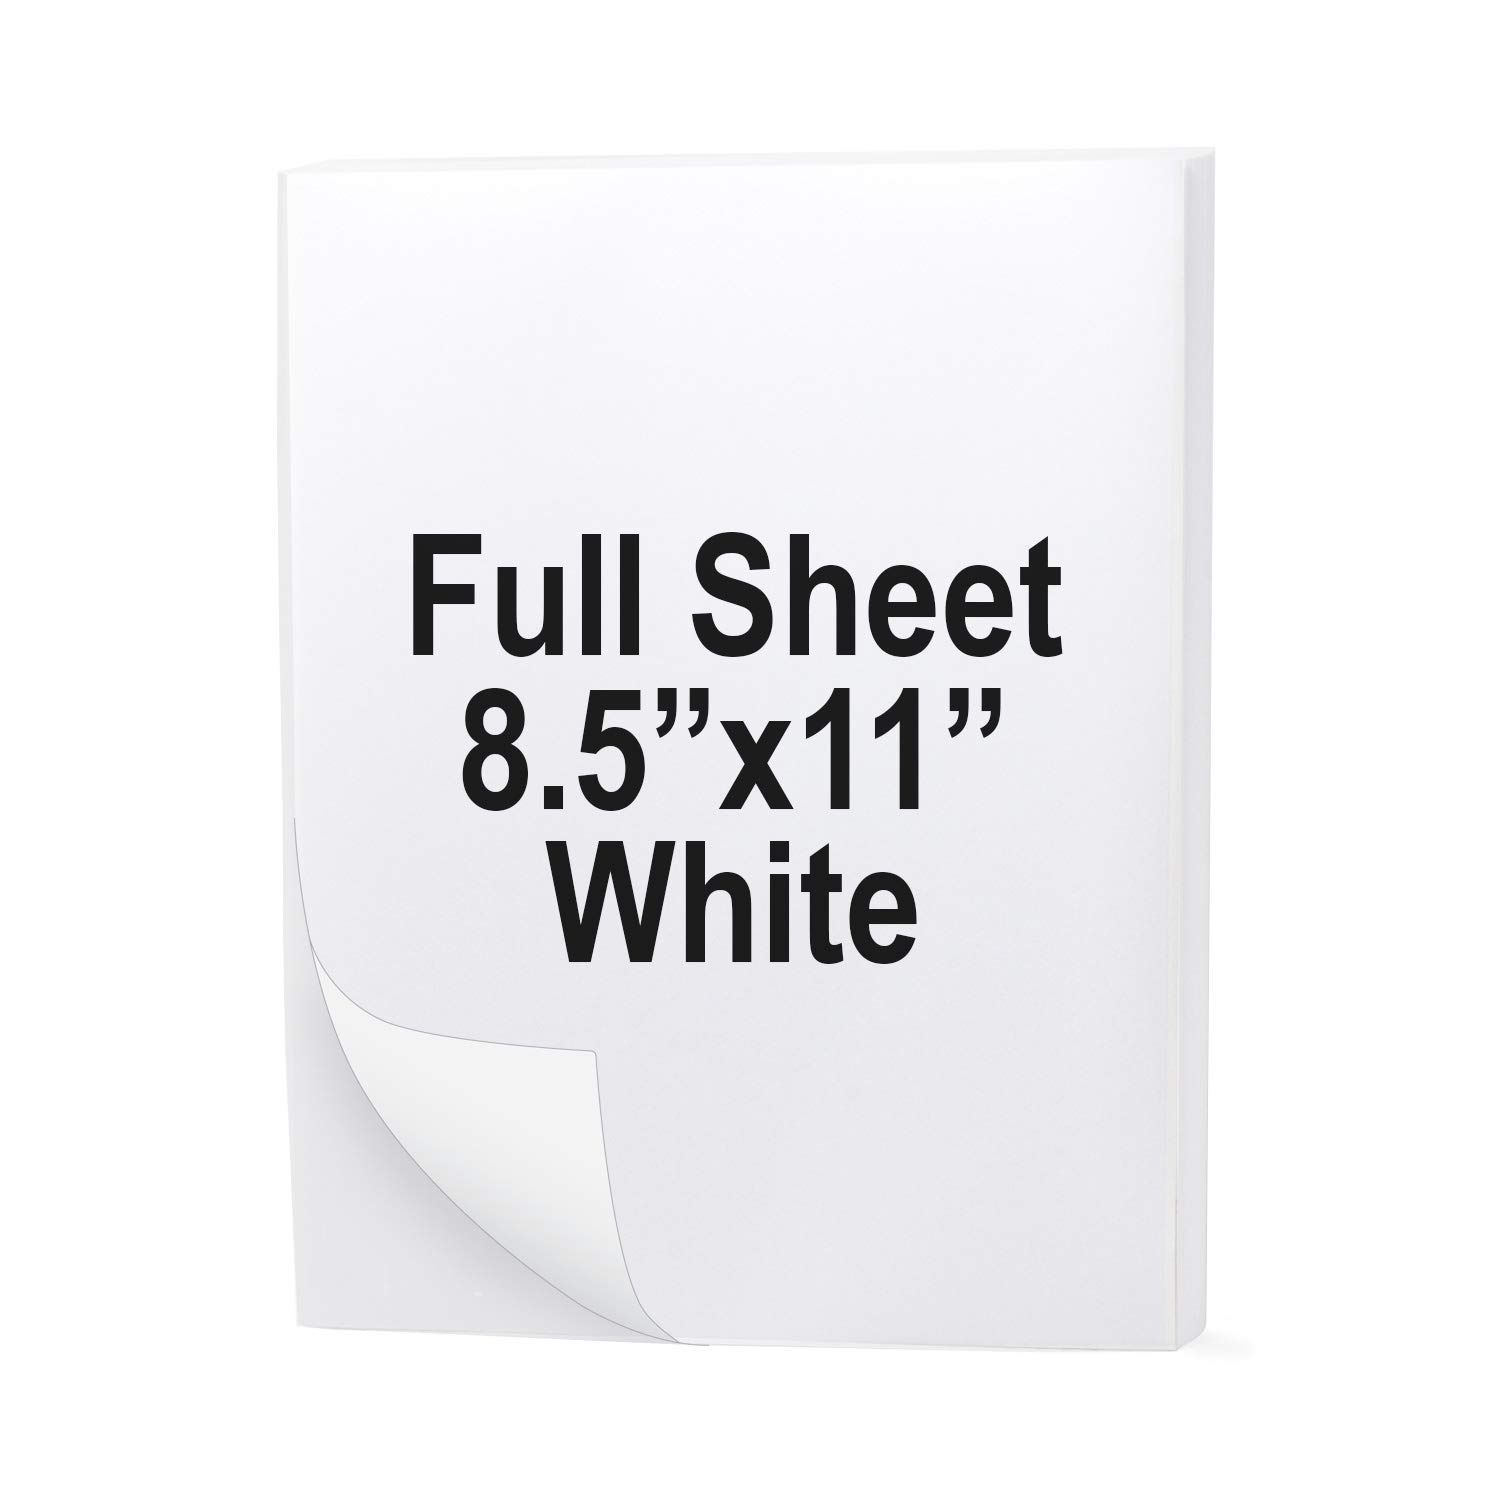 """Buhbo Full Sheet Address Shipping Label 8.5"""" x 11"""" Sticker Labels for Laser & Ink Jet Printers (100 Sheets)"""